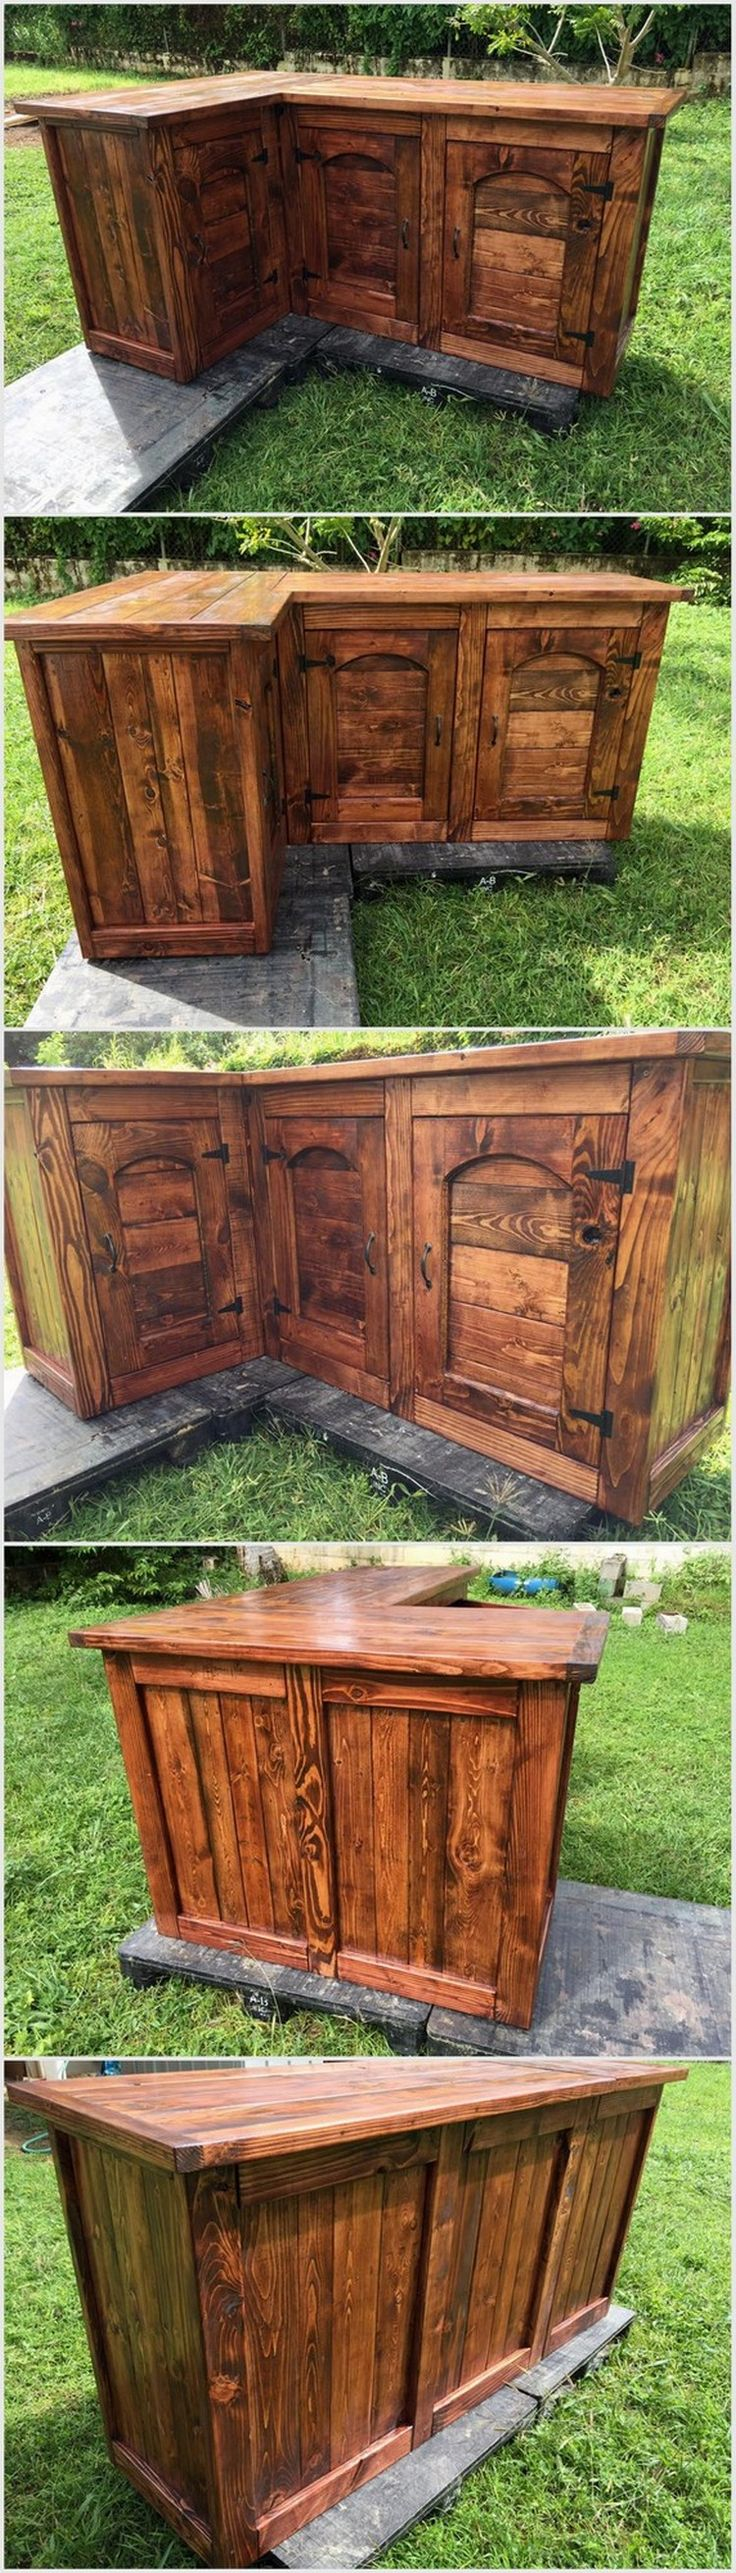 Wooden crib for sale quezon city - Stunning Achievements With Recycled Pallets Wood